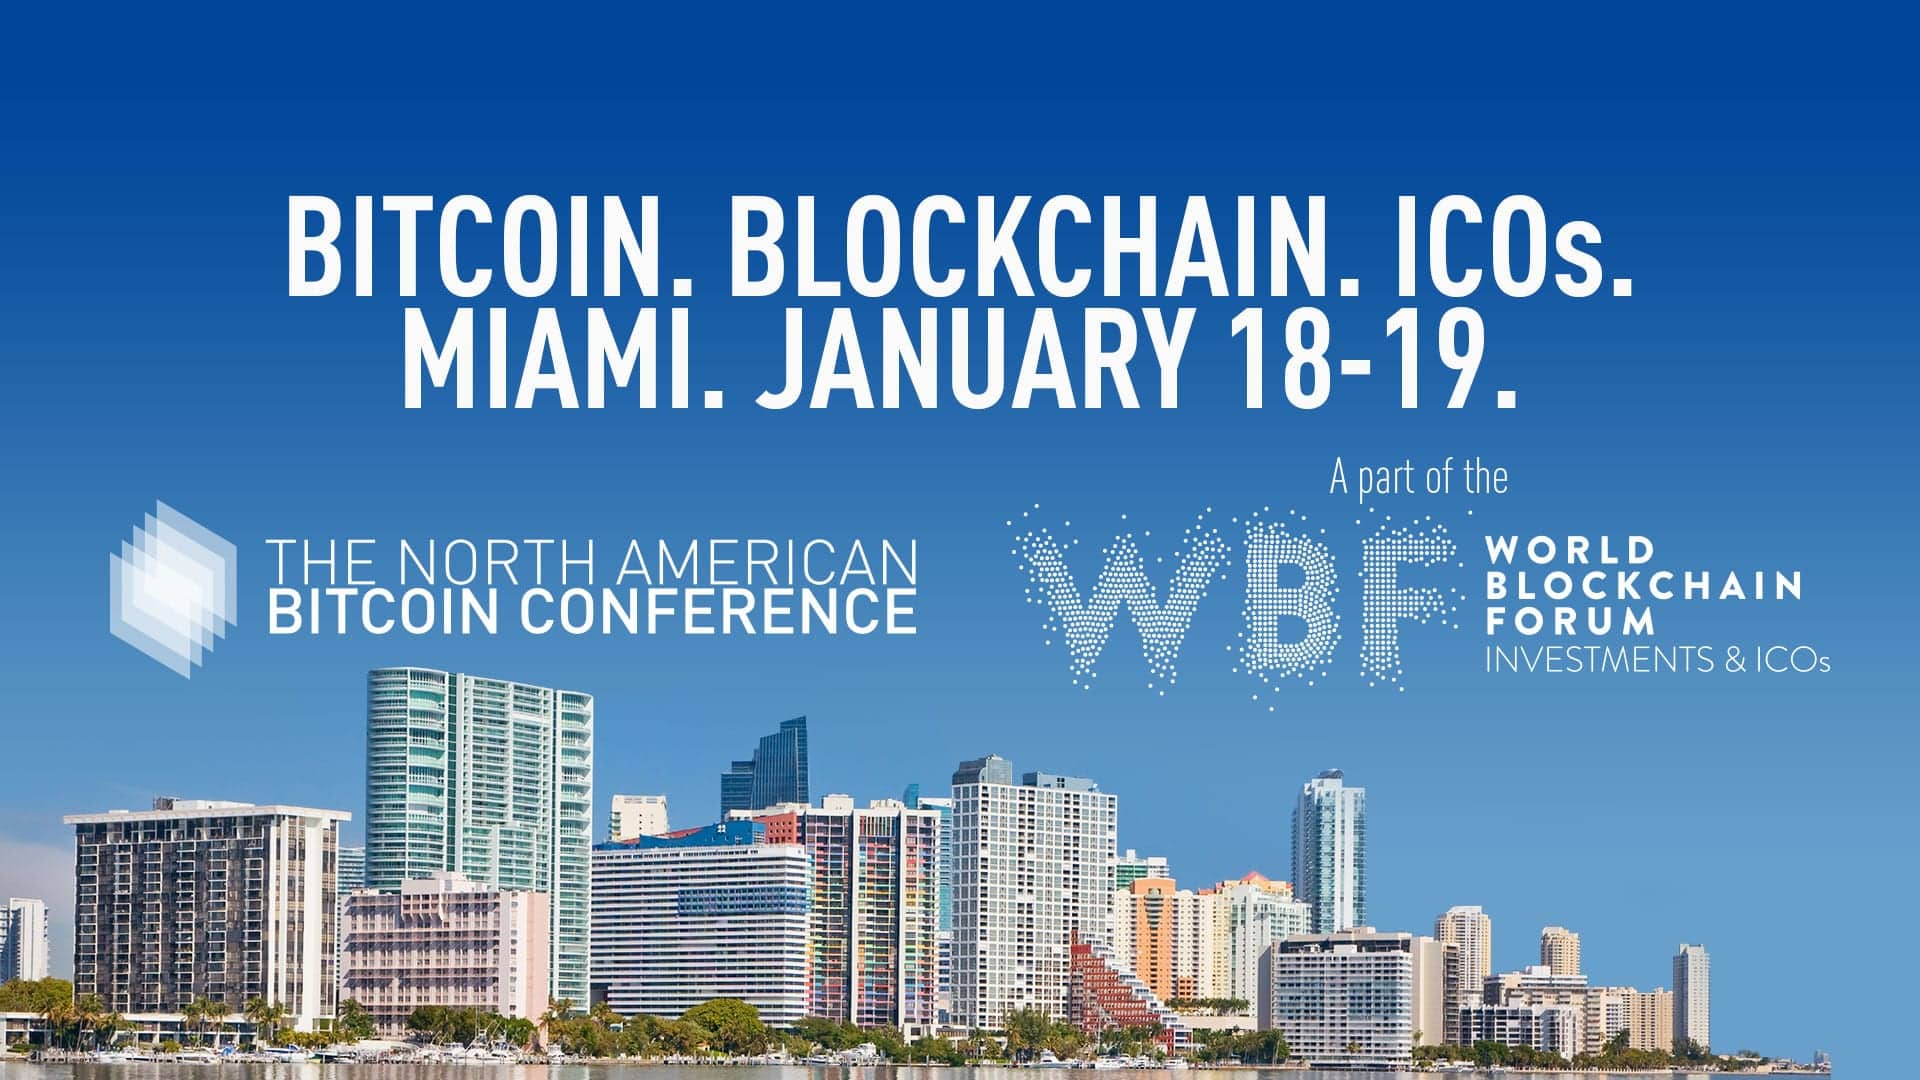 Lisk USA at the North American Bitcoin Conference in Miami!